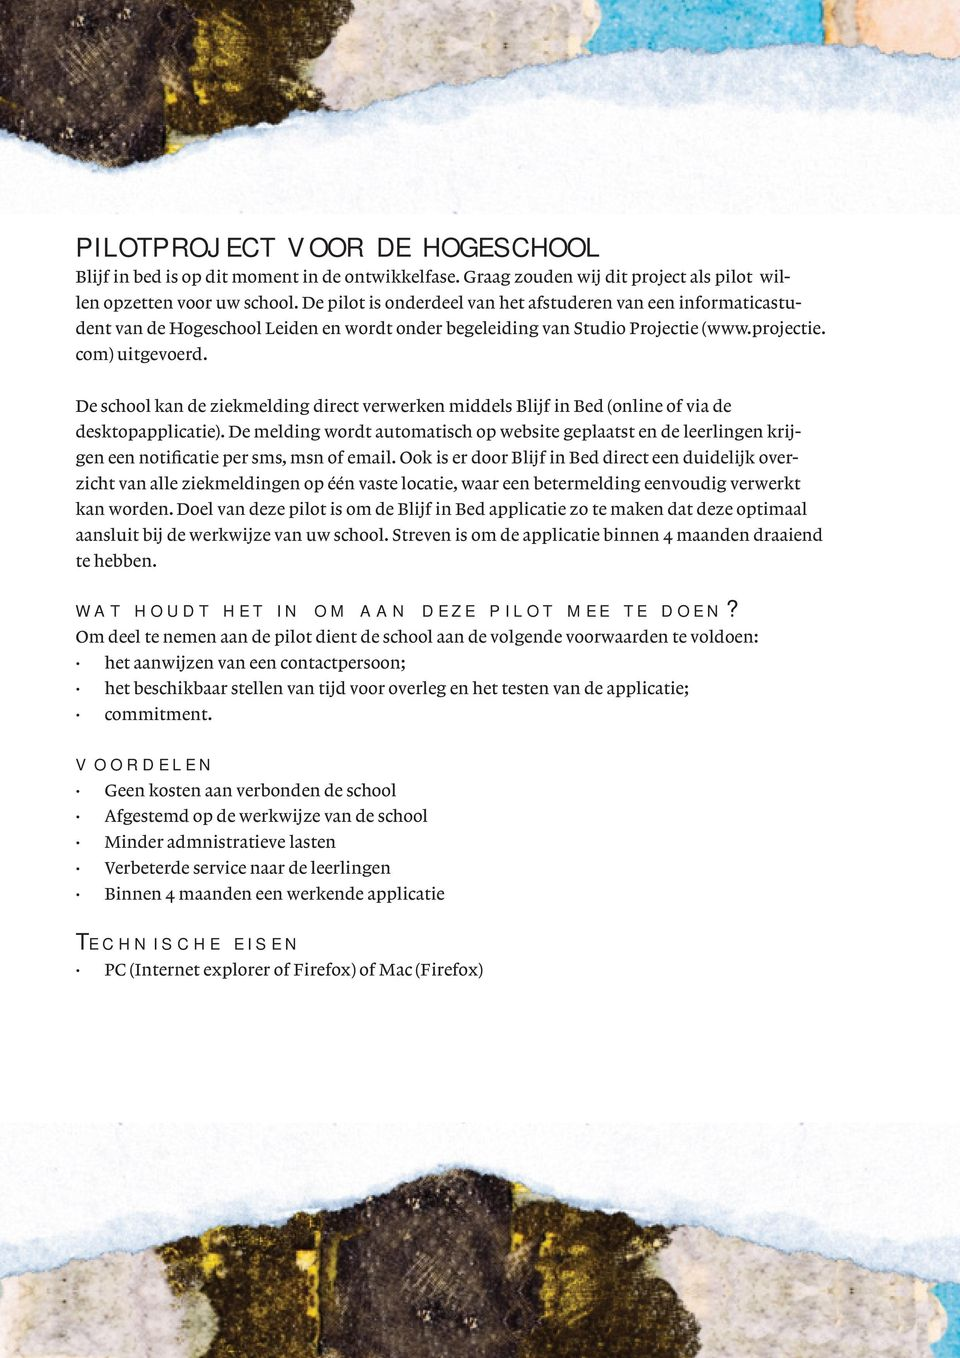 De school kan de ziekmelding direct verwerken middels Blijf in Bed (online of via de desktopapplicatie).